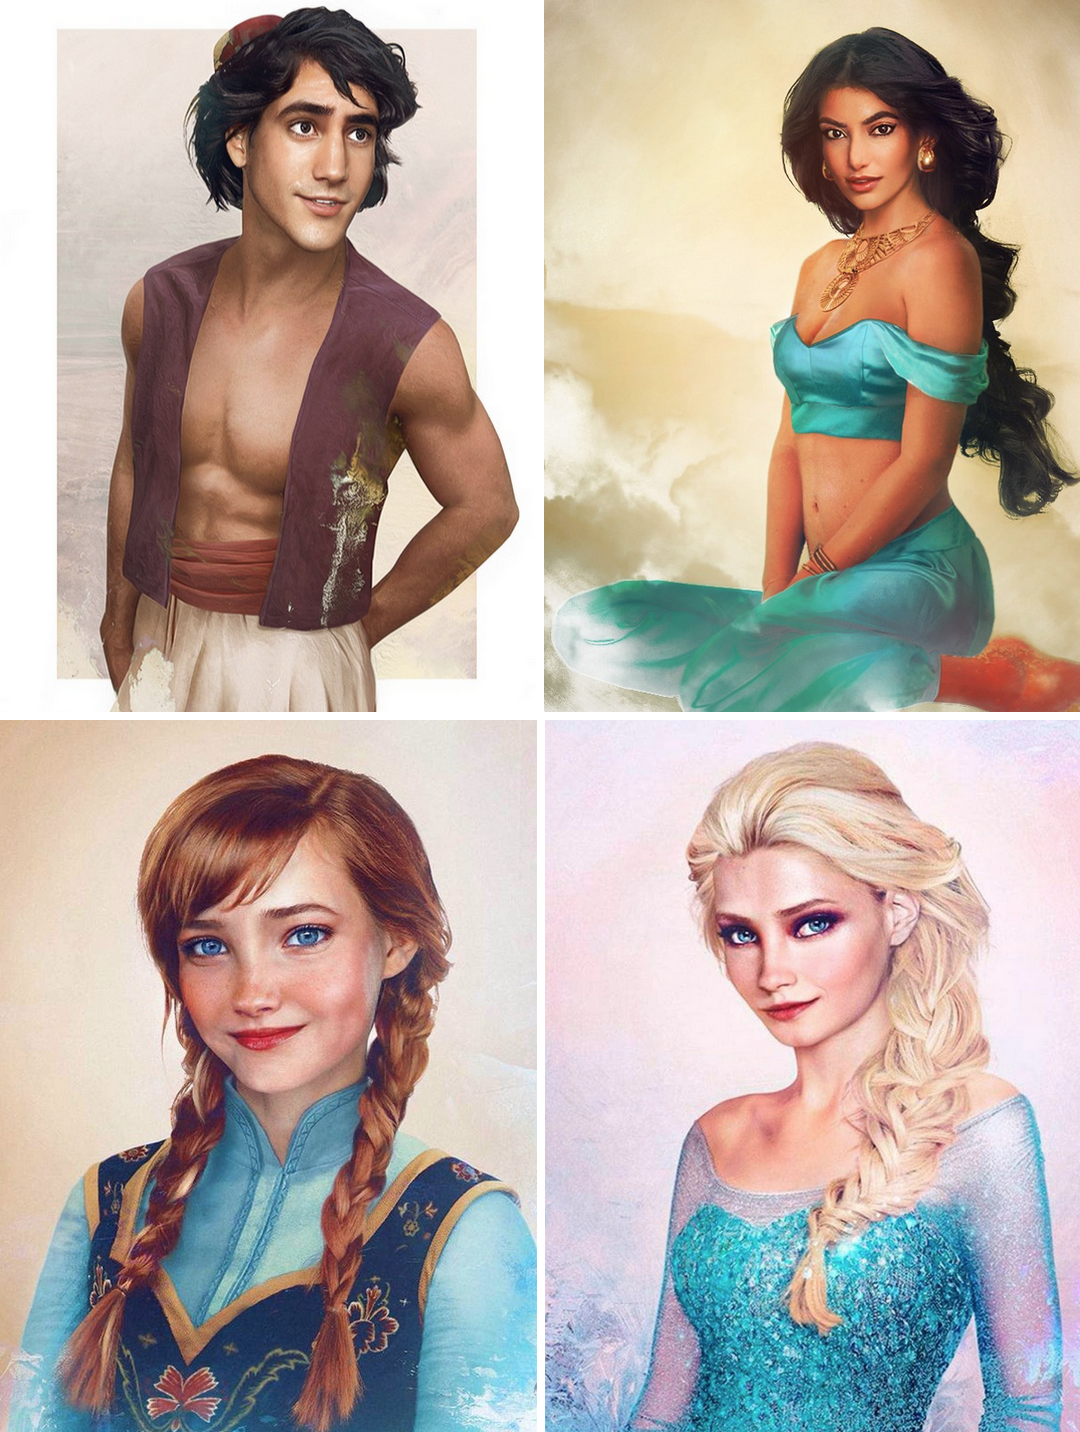 Disney characters as real people